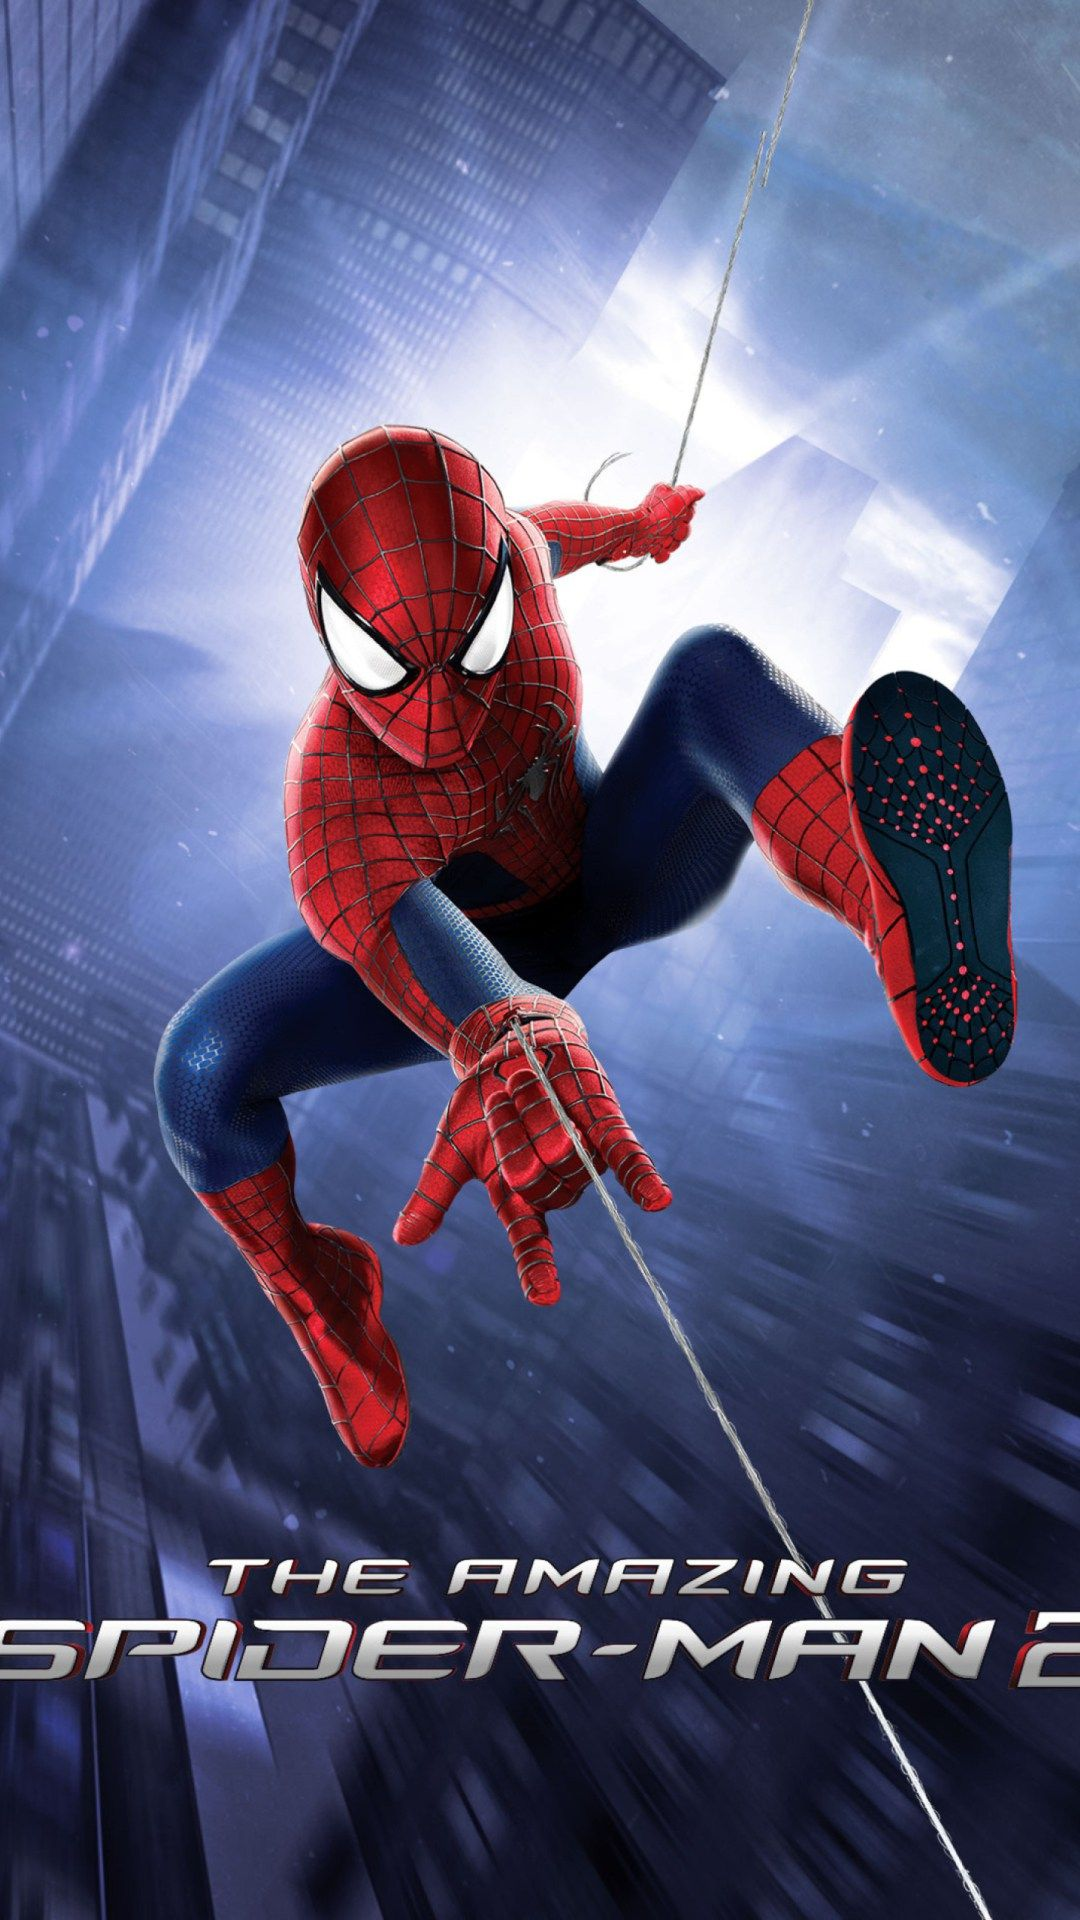 Superheroes Hd Wallpaper Collection For Iphone 6 And Iphone 6 Plus Superhero Background Spiderman Superhero